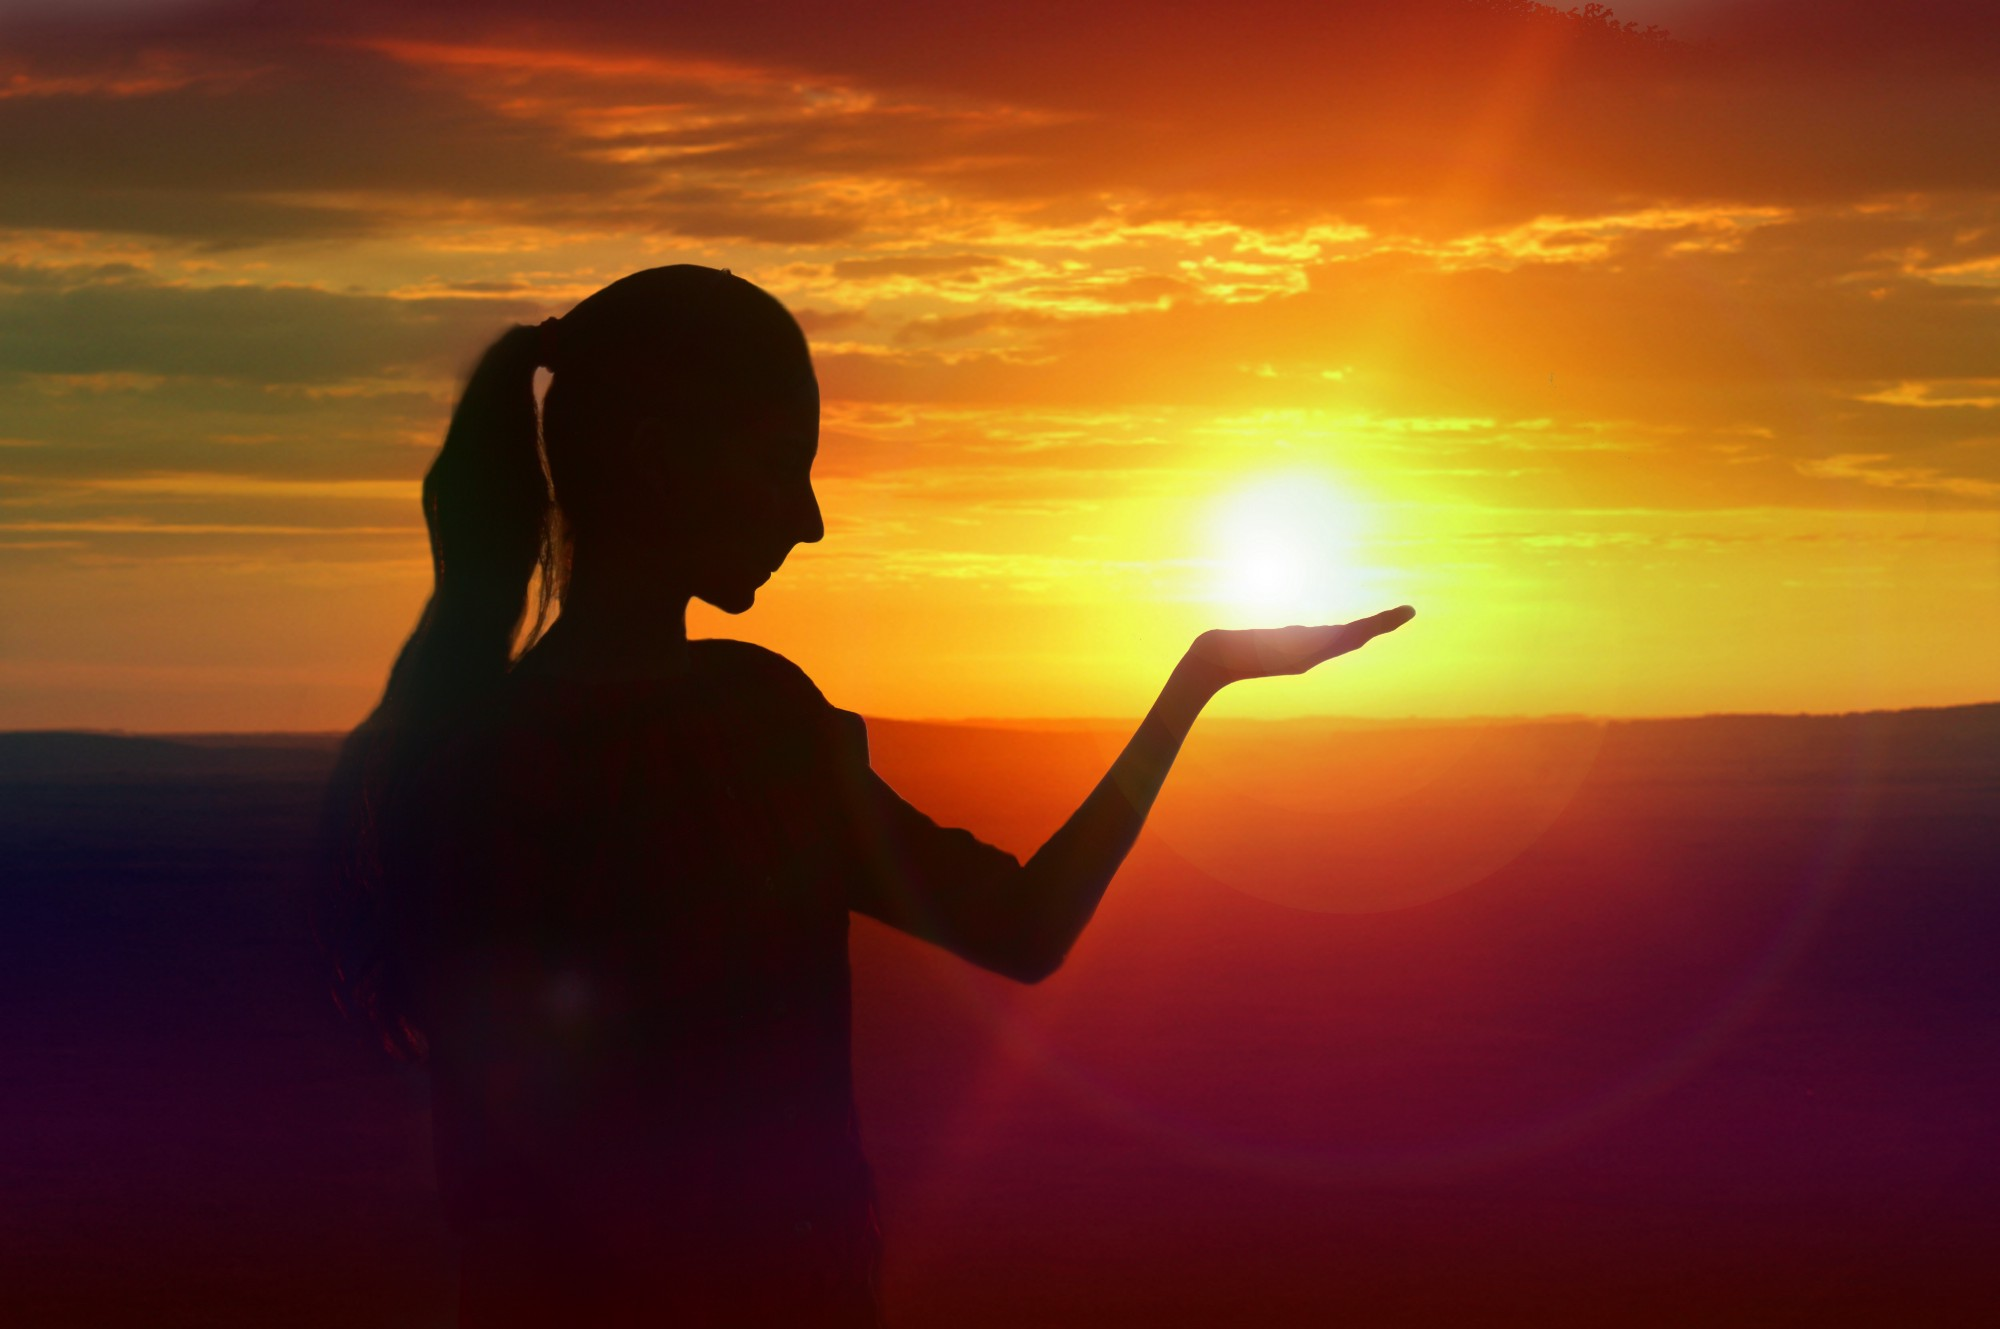 Silhouetted woman that appears to be holding the sun in her hand.